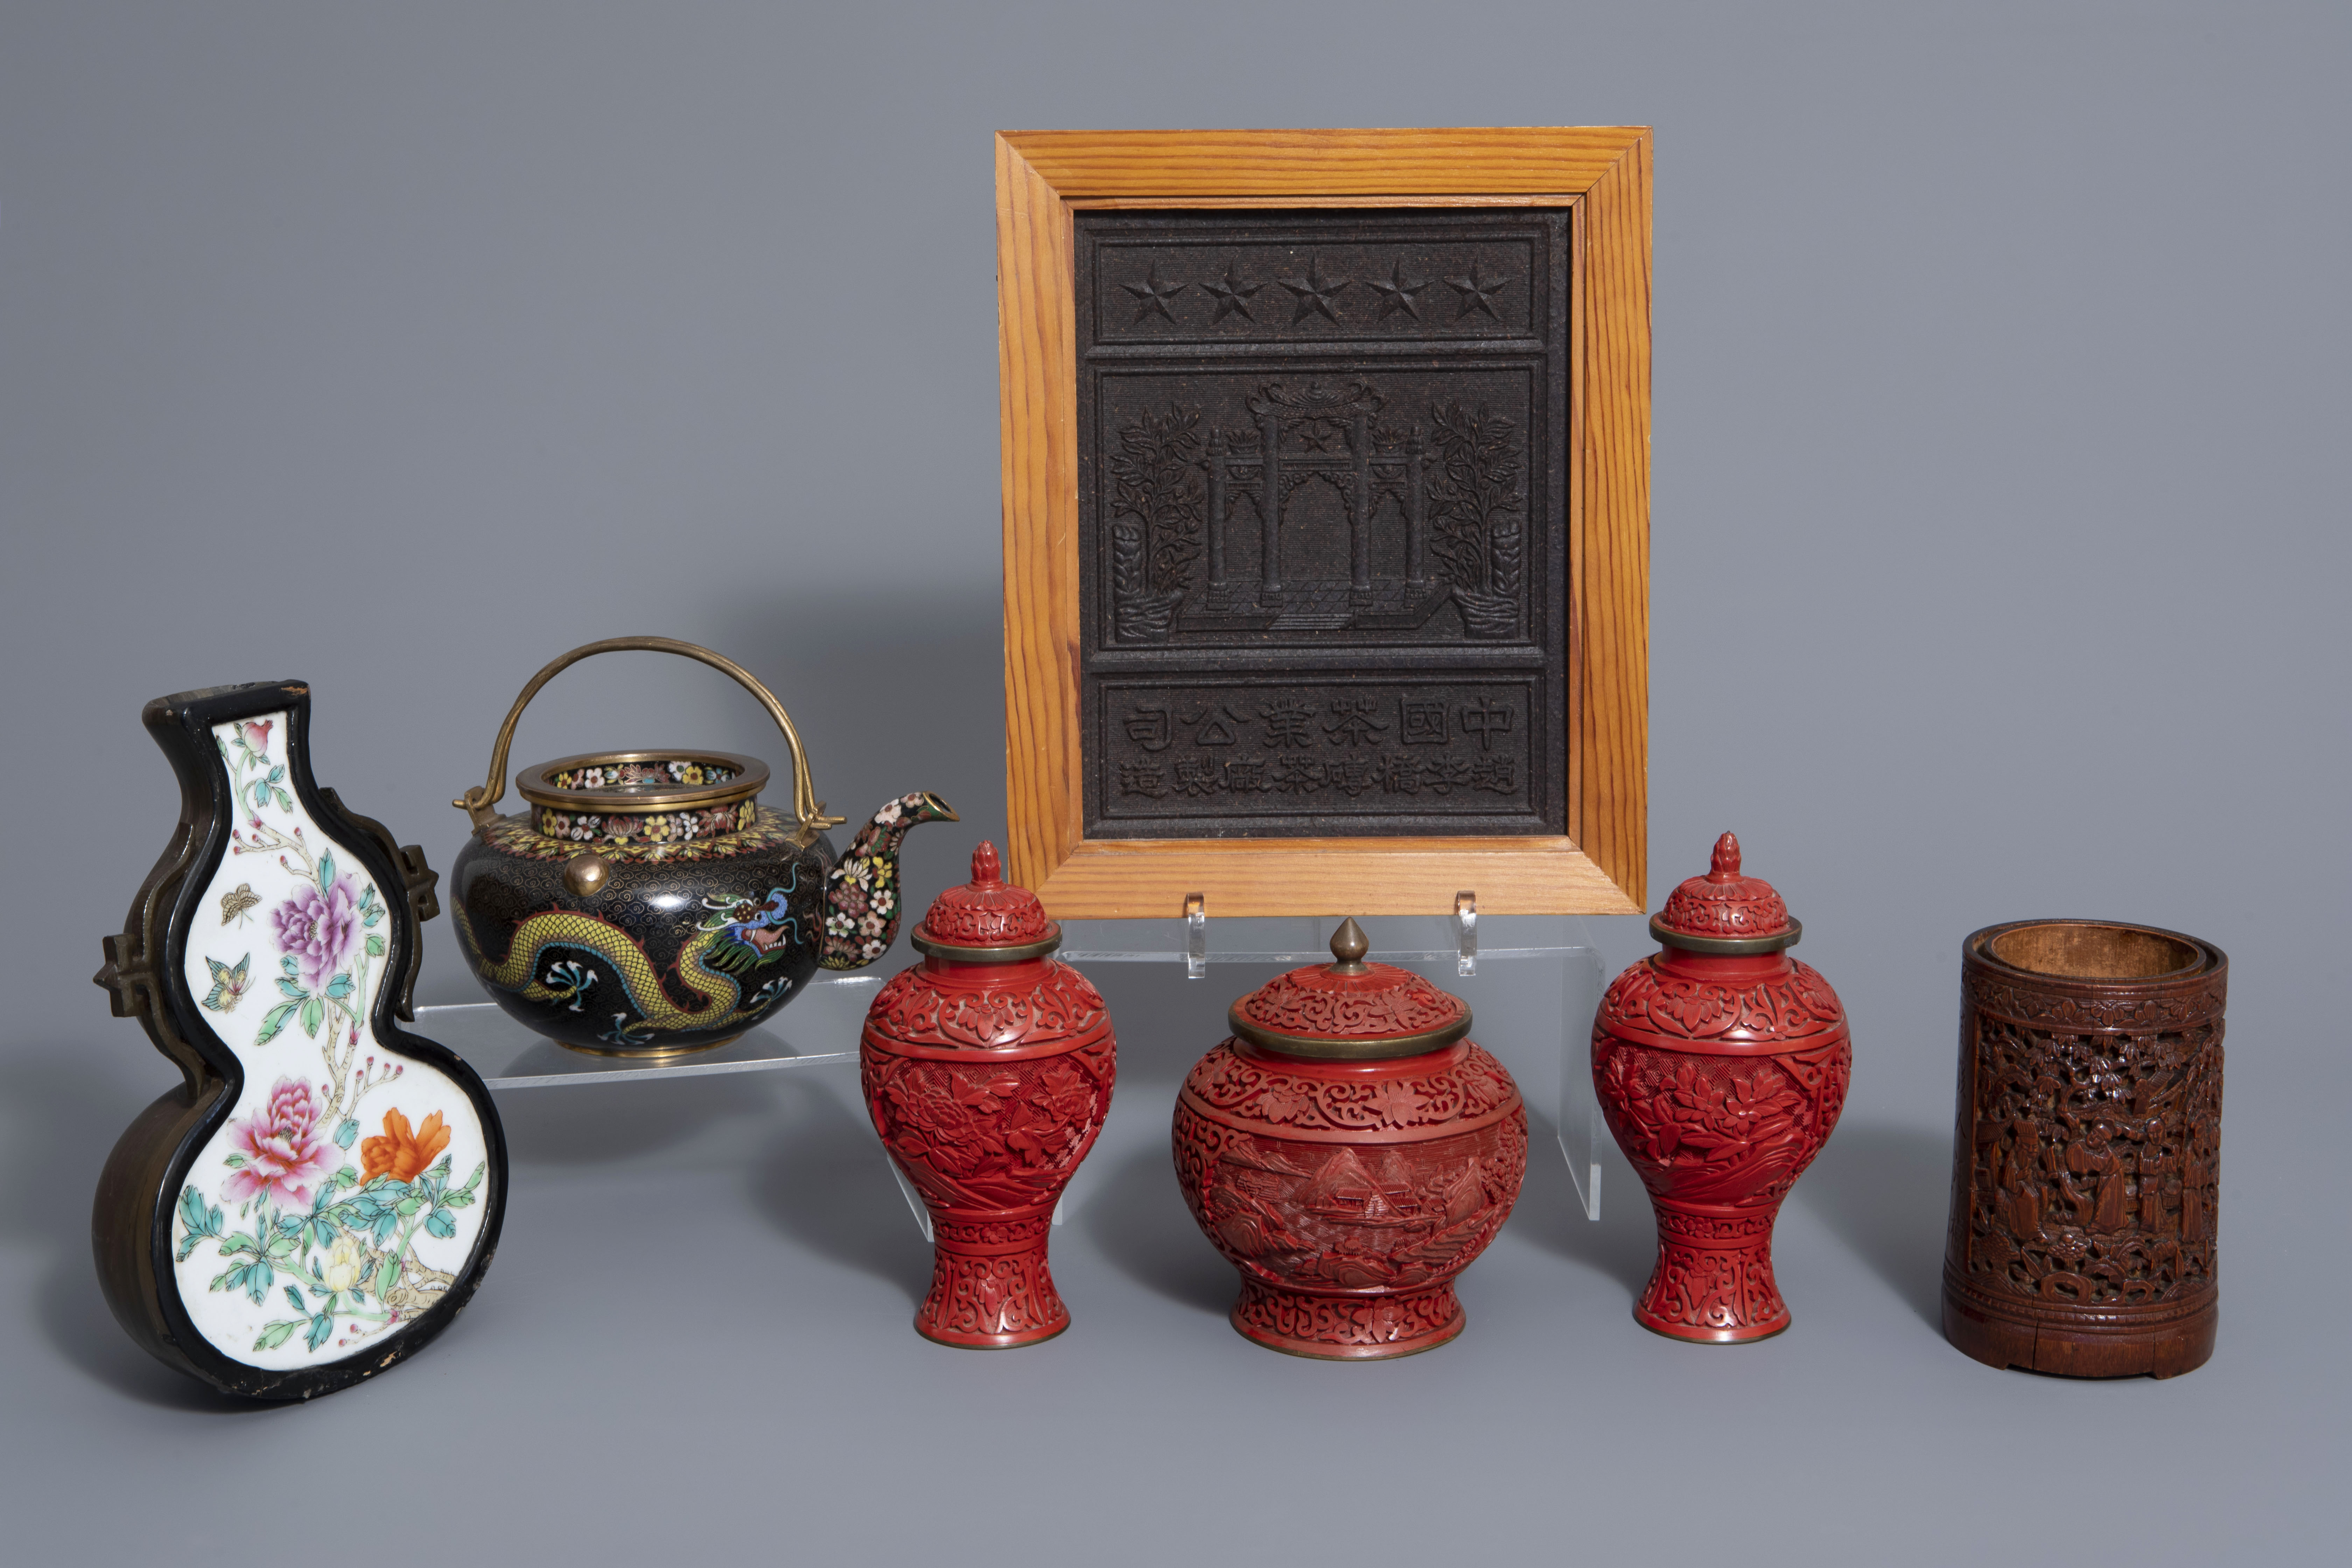 A Chinese tea block, cloisonné teapot, wall vase, bamboo brush pot & 3 red lacquer vases, 20th C.